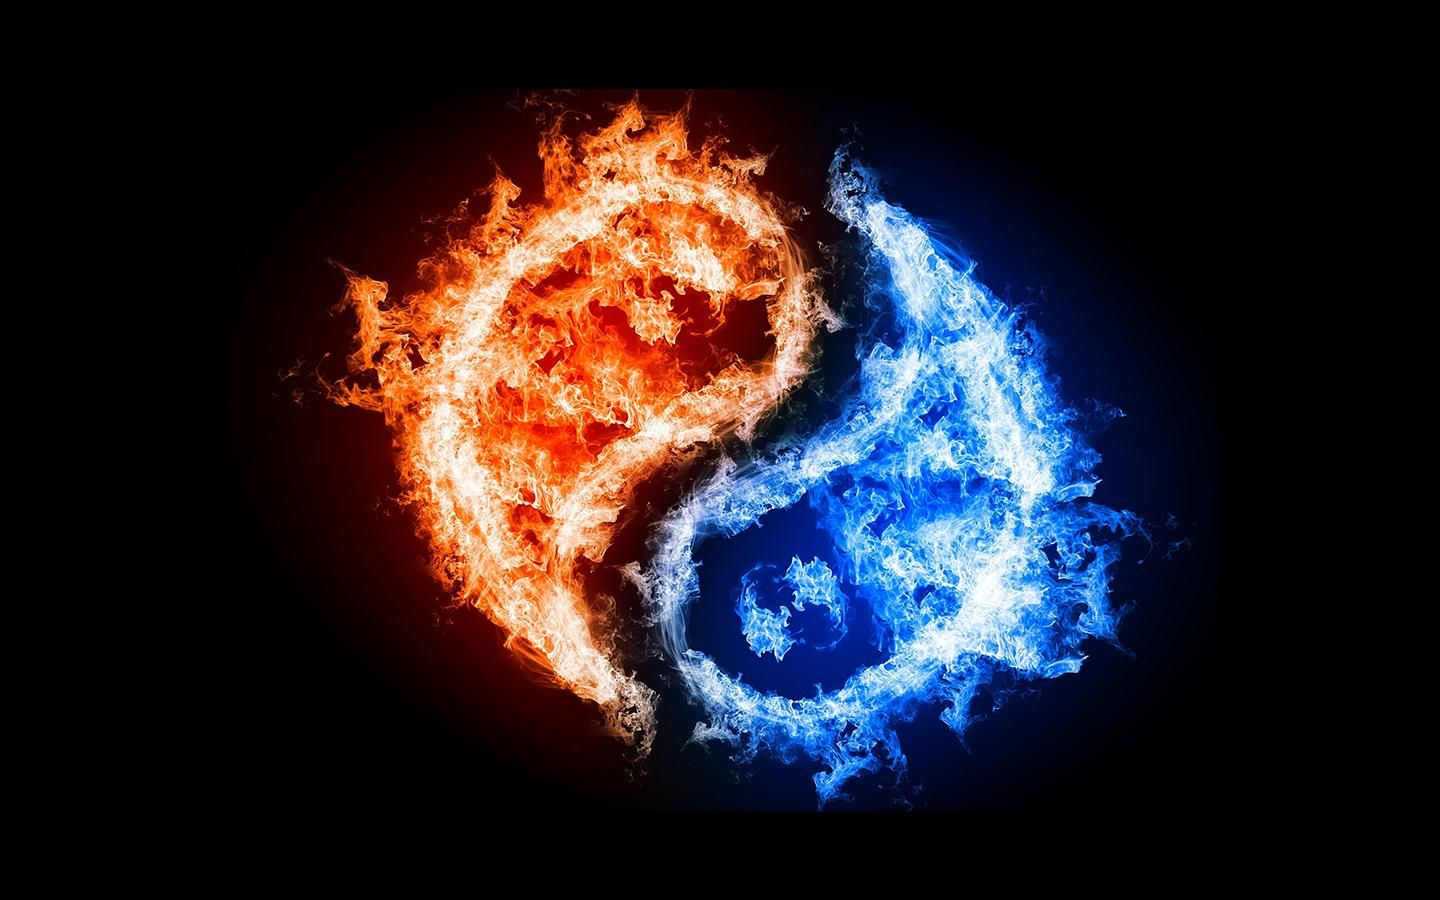 26+ Fire And Ice Yin Yang Wallpaper Pictures